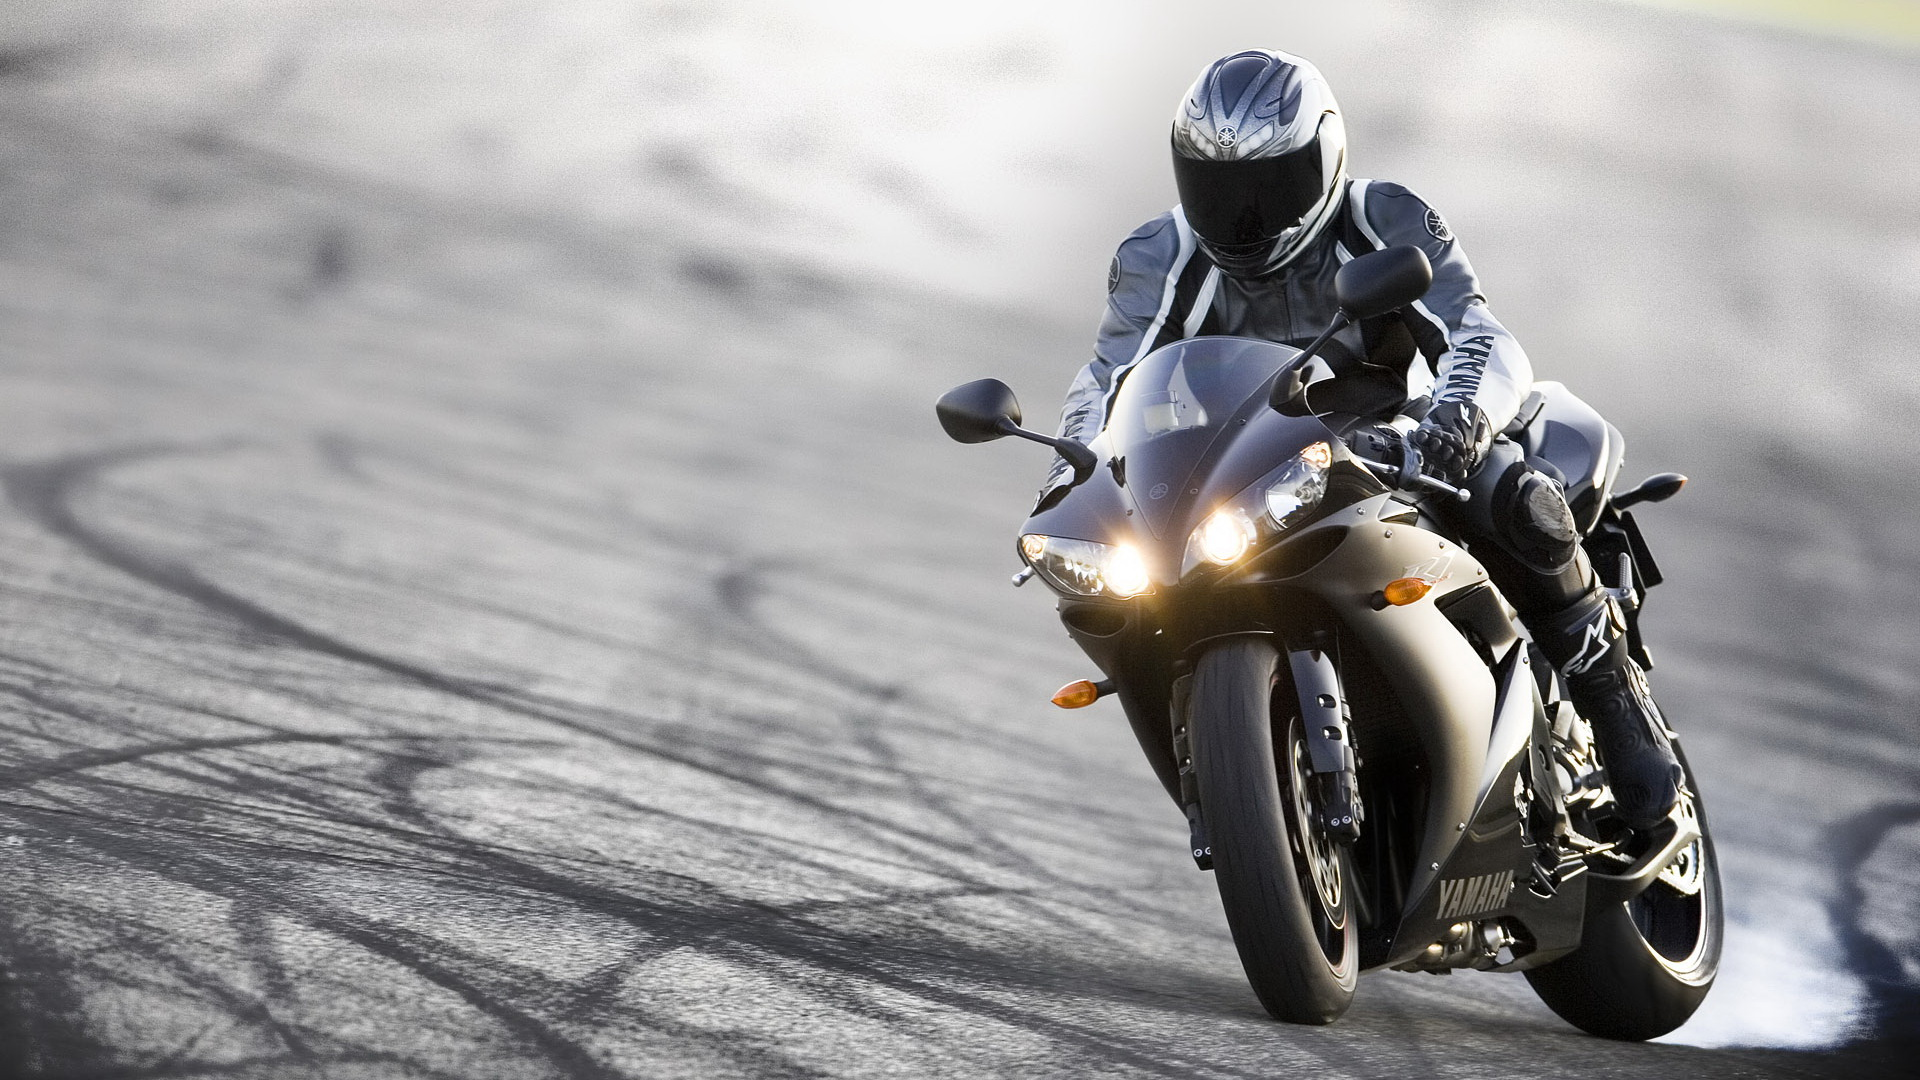 Hd Wallpapers For Pc Bike